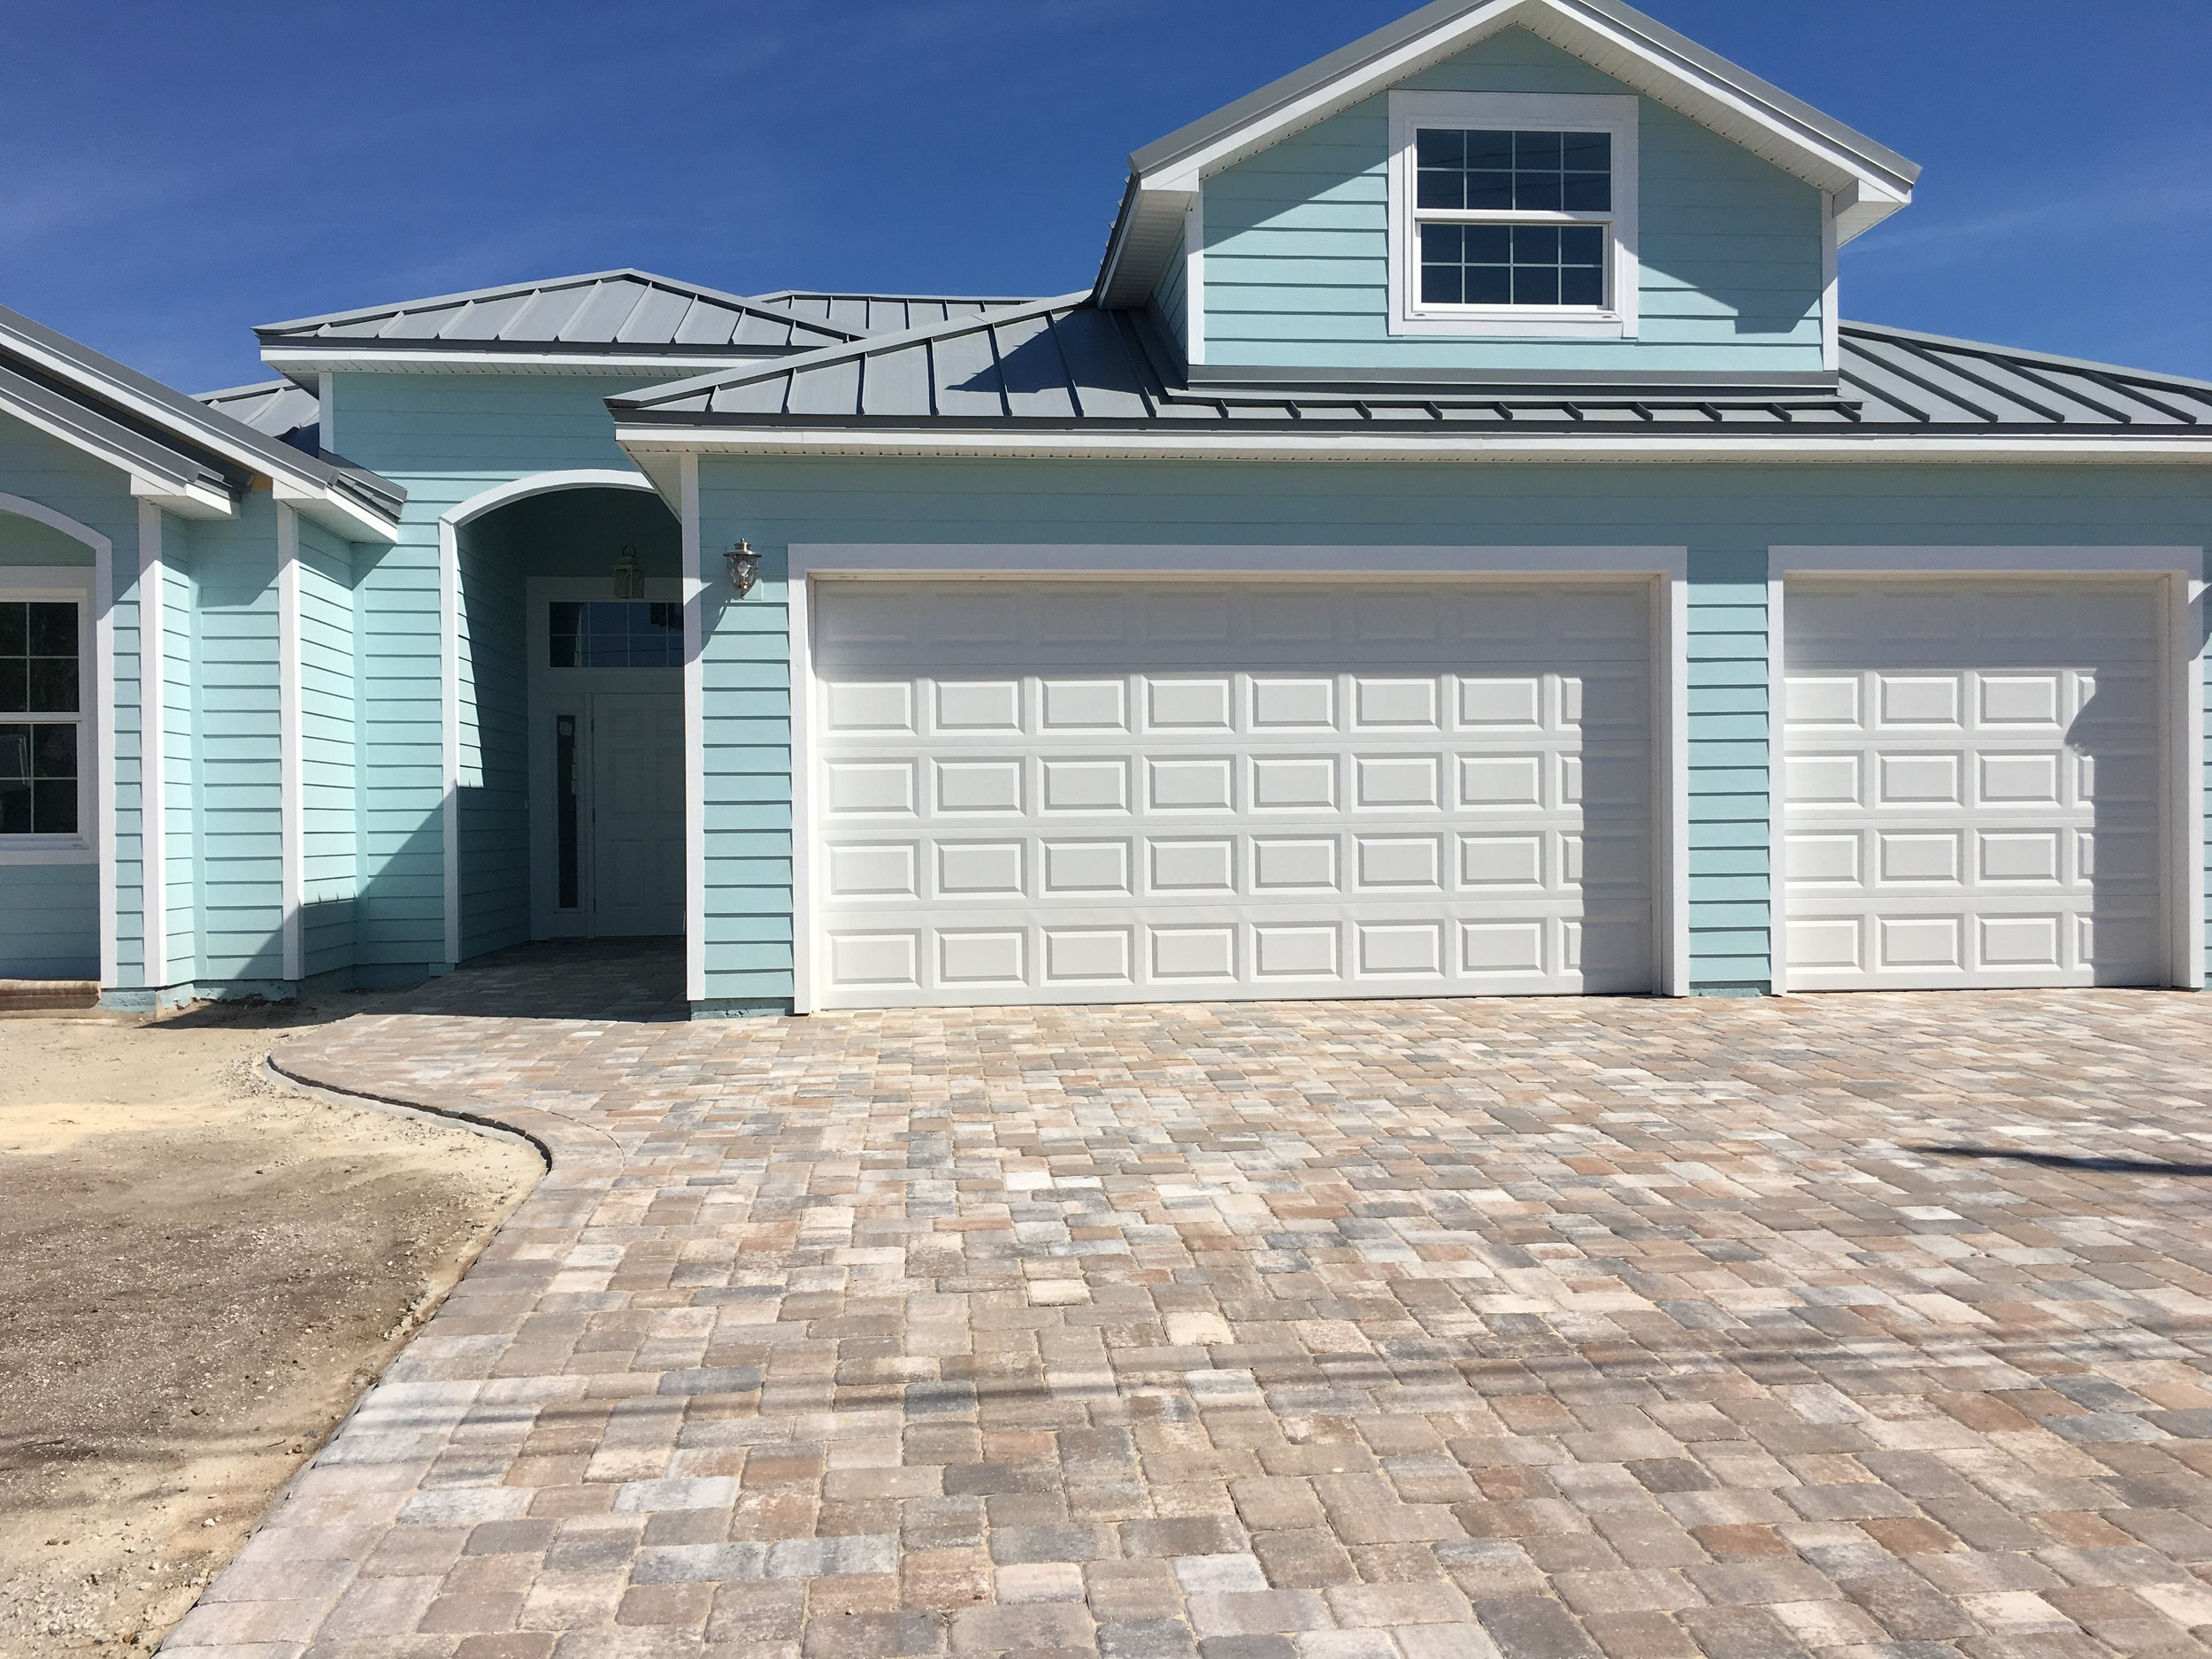 Adding a paver driveway will add to your home's value as well as its curb appeal.